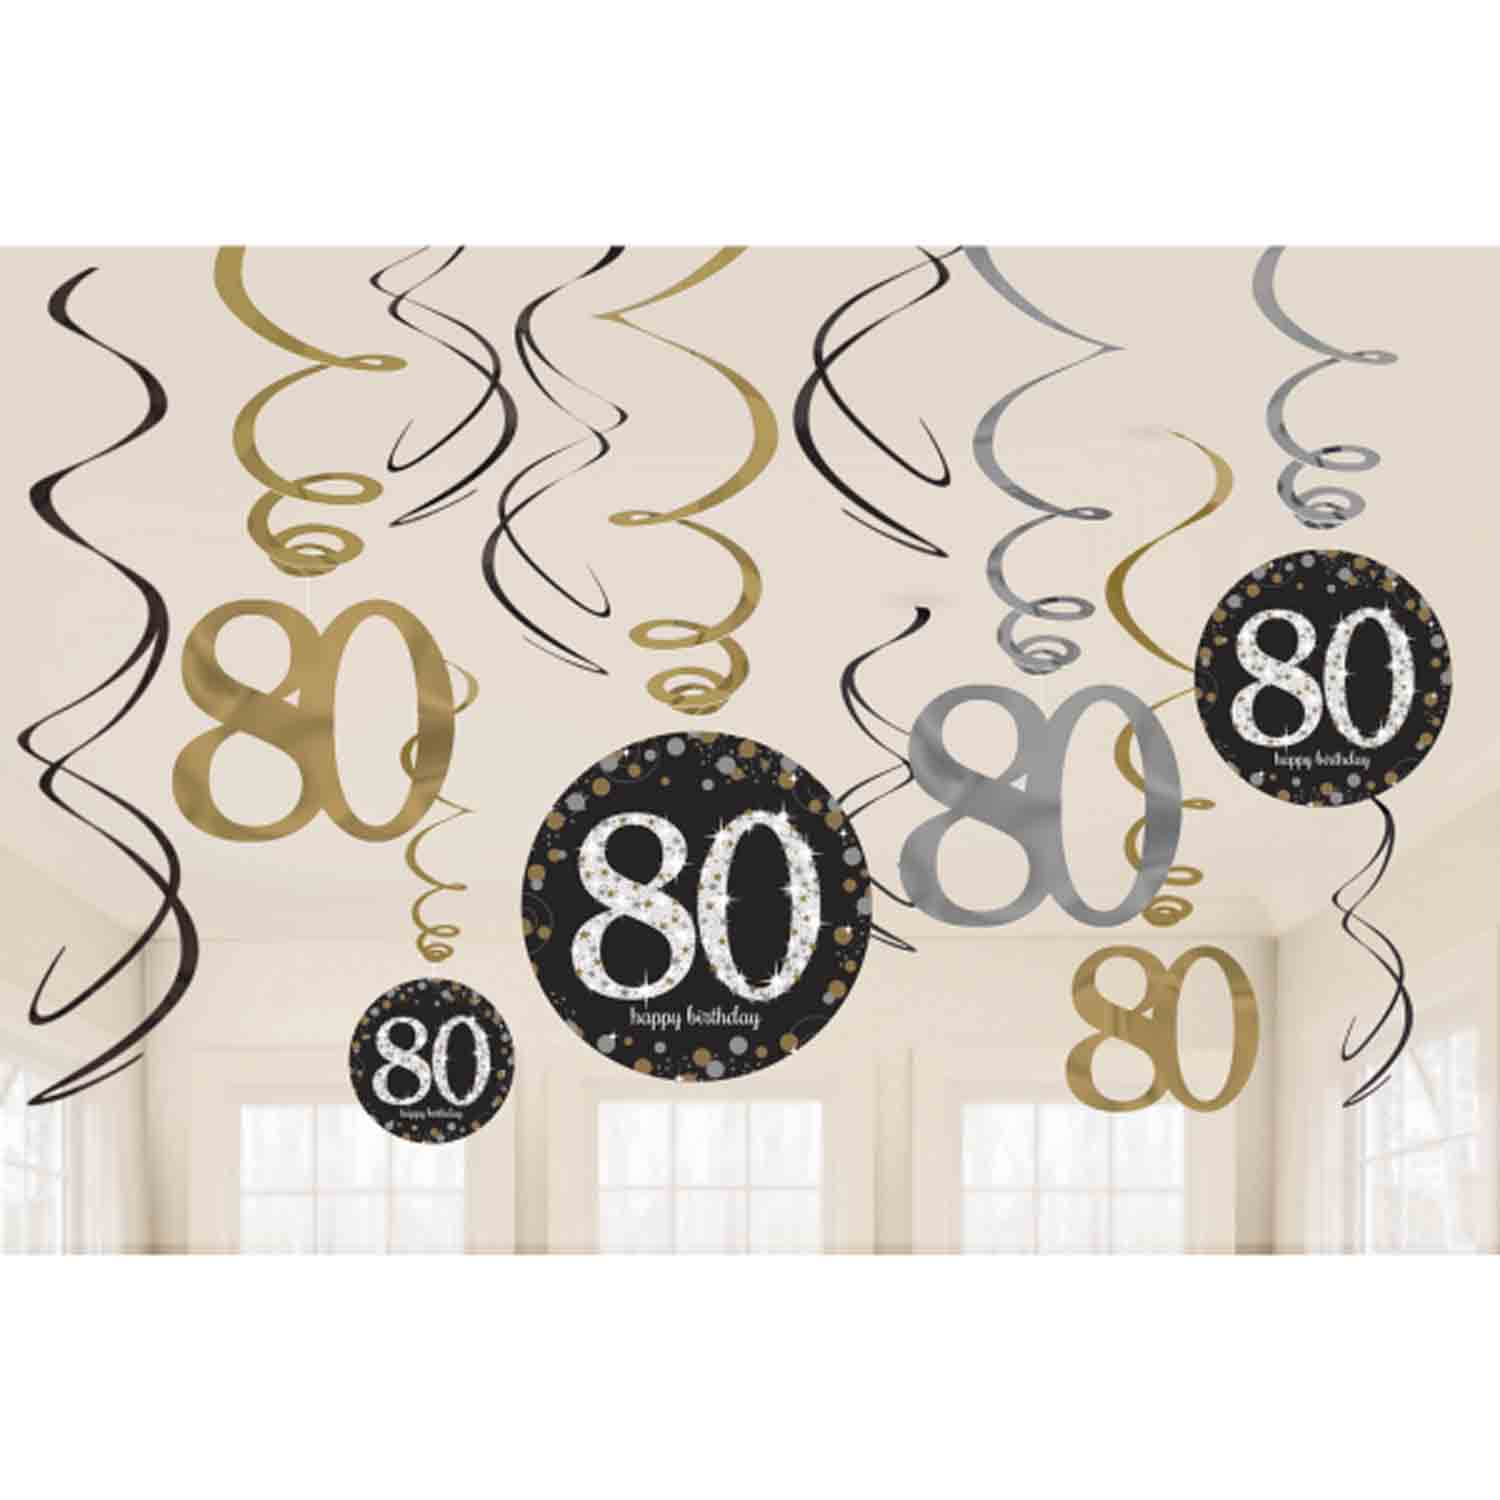 12 x 80th Birthday Hanging Swirls Black Silver Gold Party Decorations Age 80 : eBay